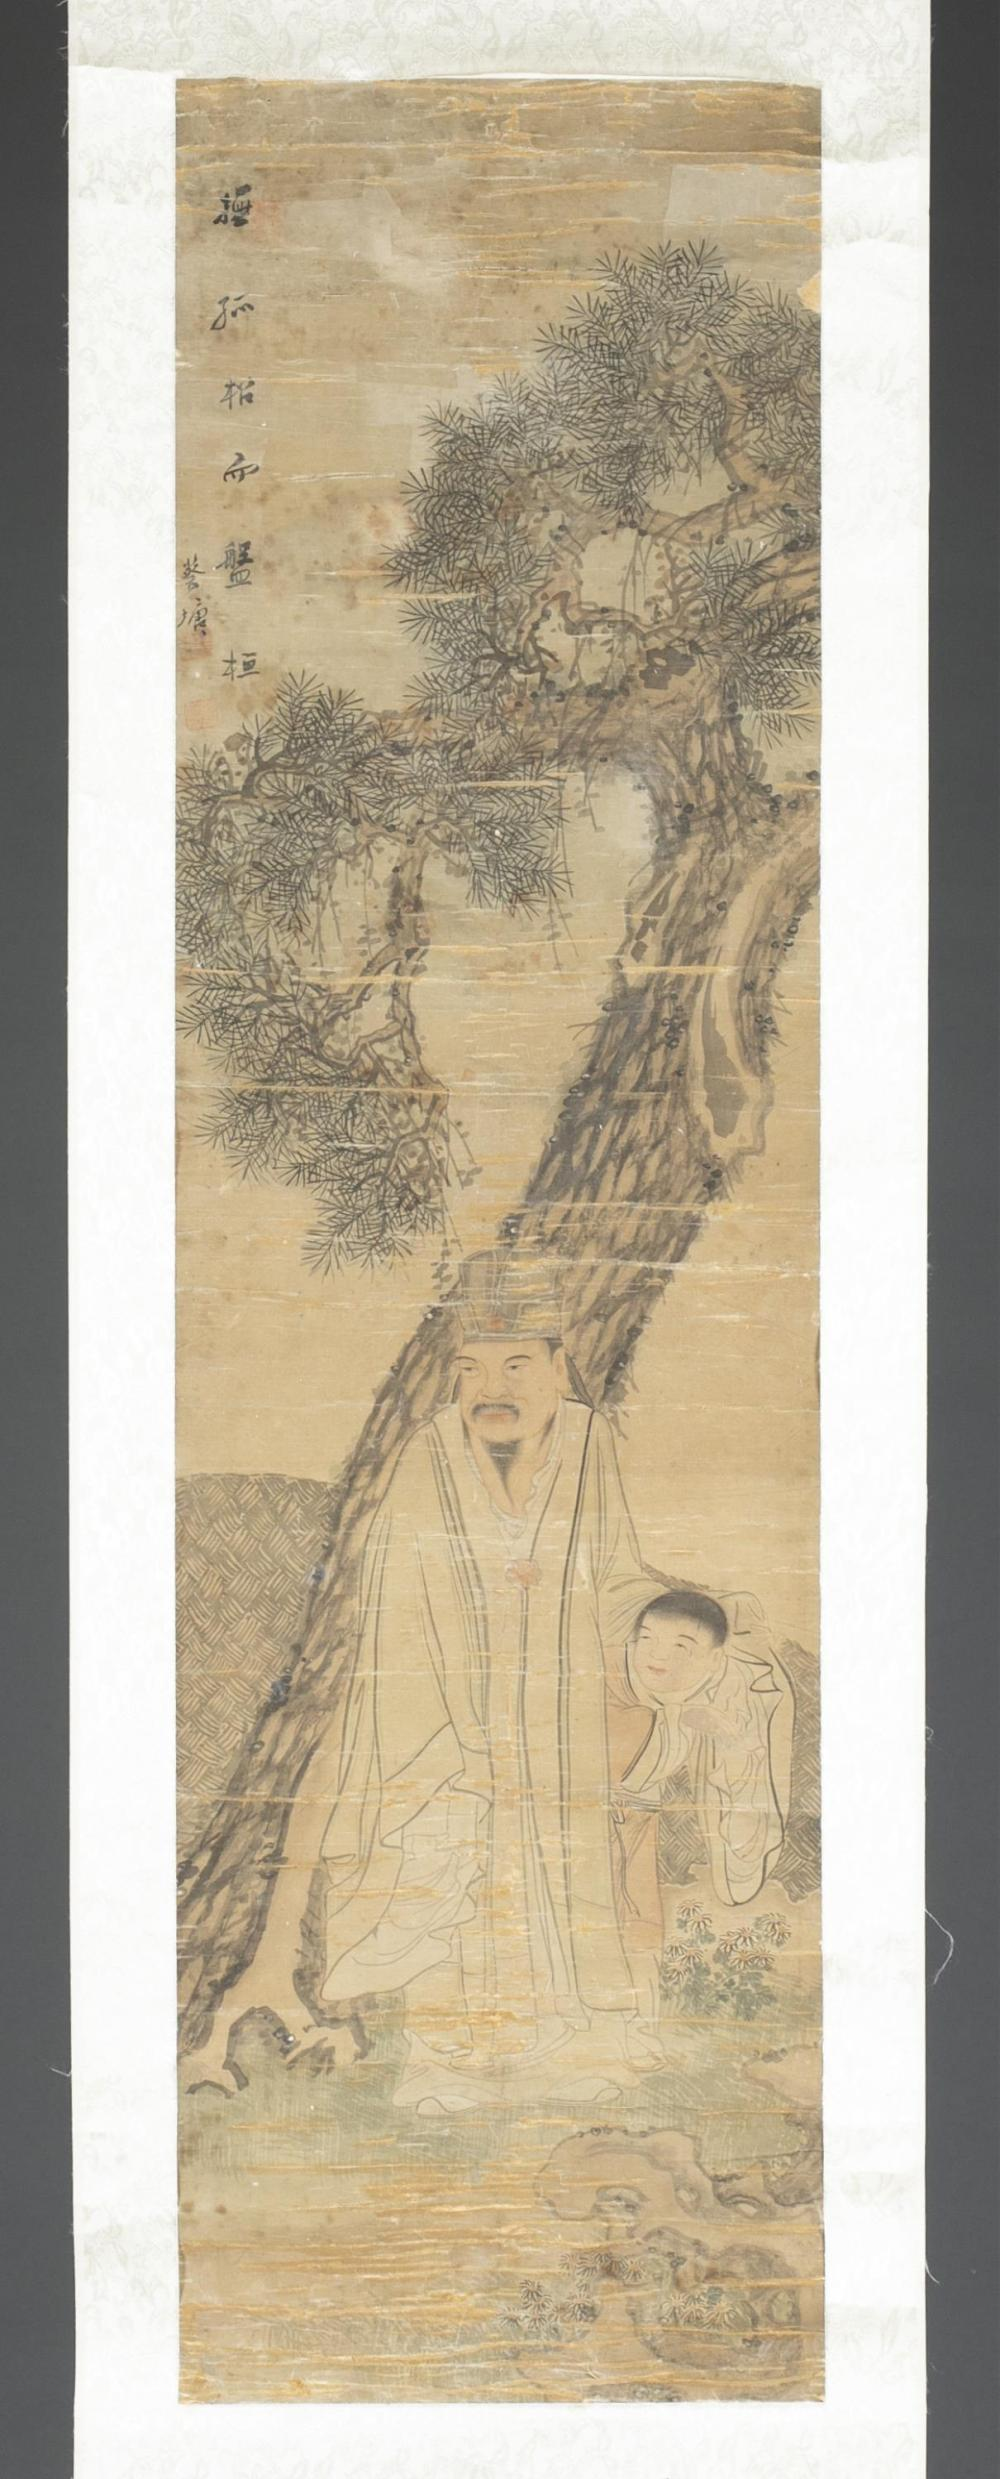 Antique Chinese scroll painting of a father and son by Cai Tang